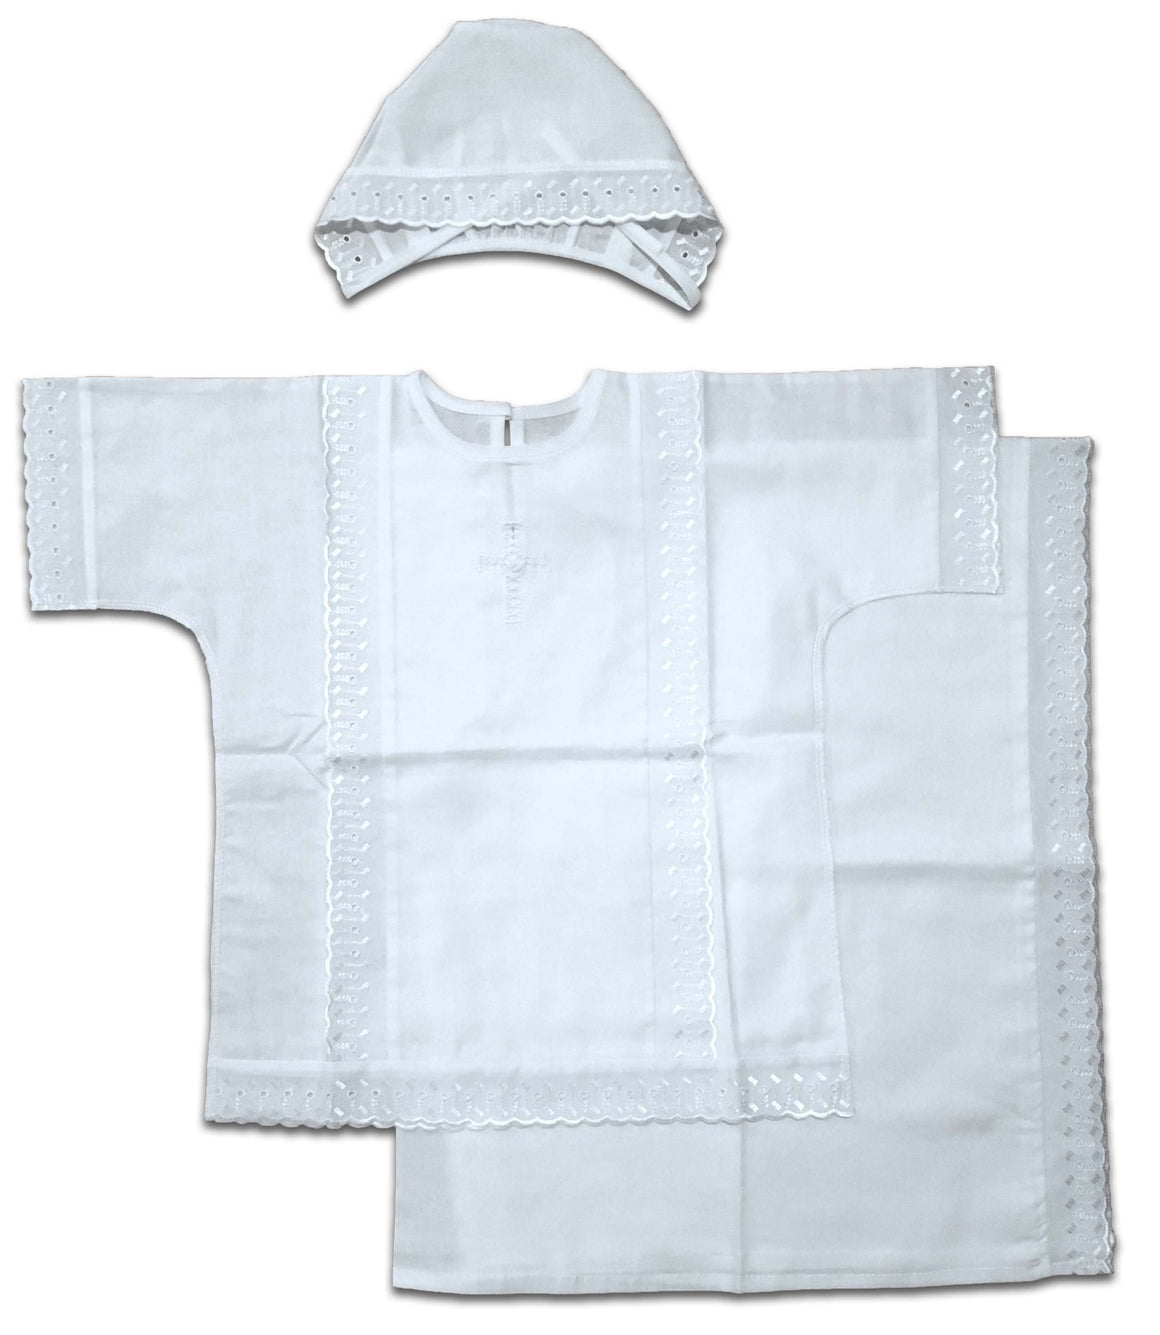 Simple Baptismal Gown (6-12 months)